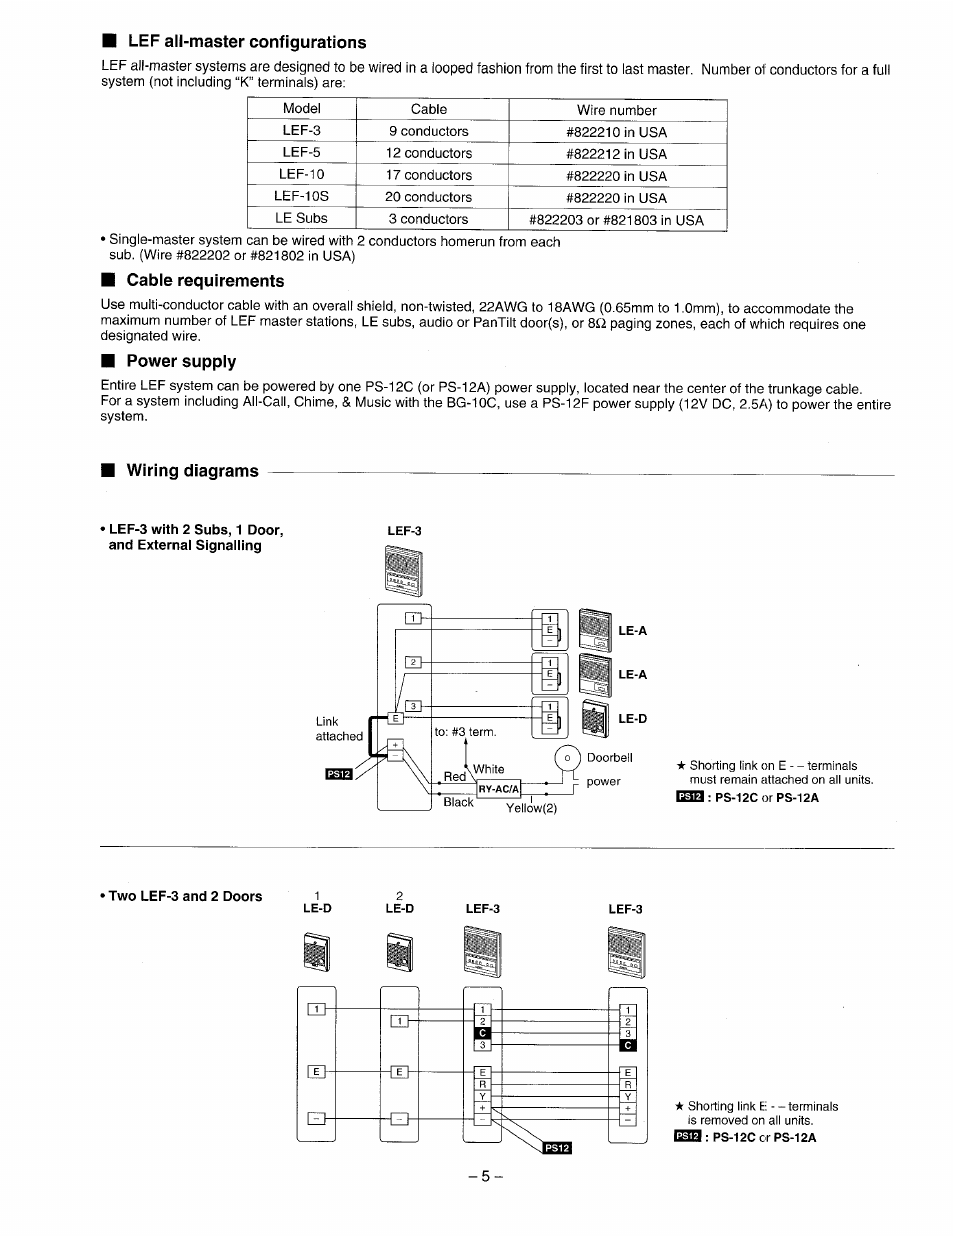 aiphone lef 3 wiring diagram switched spur cable requirements power supply diagrams user manual page 5 12